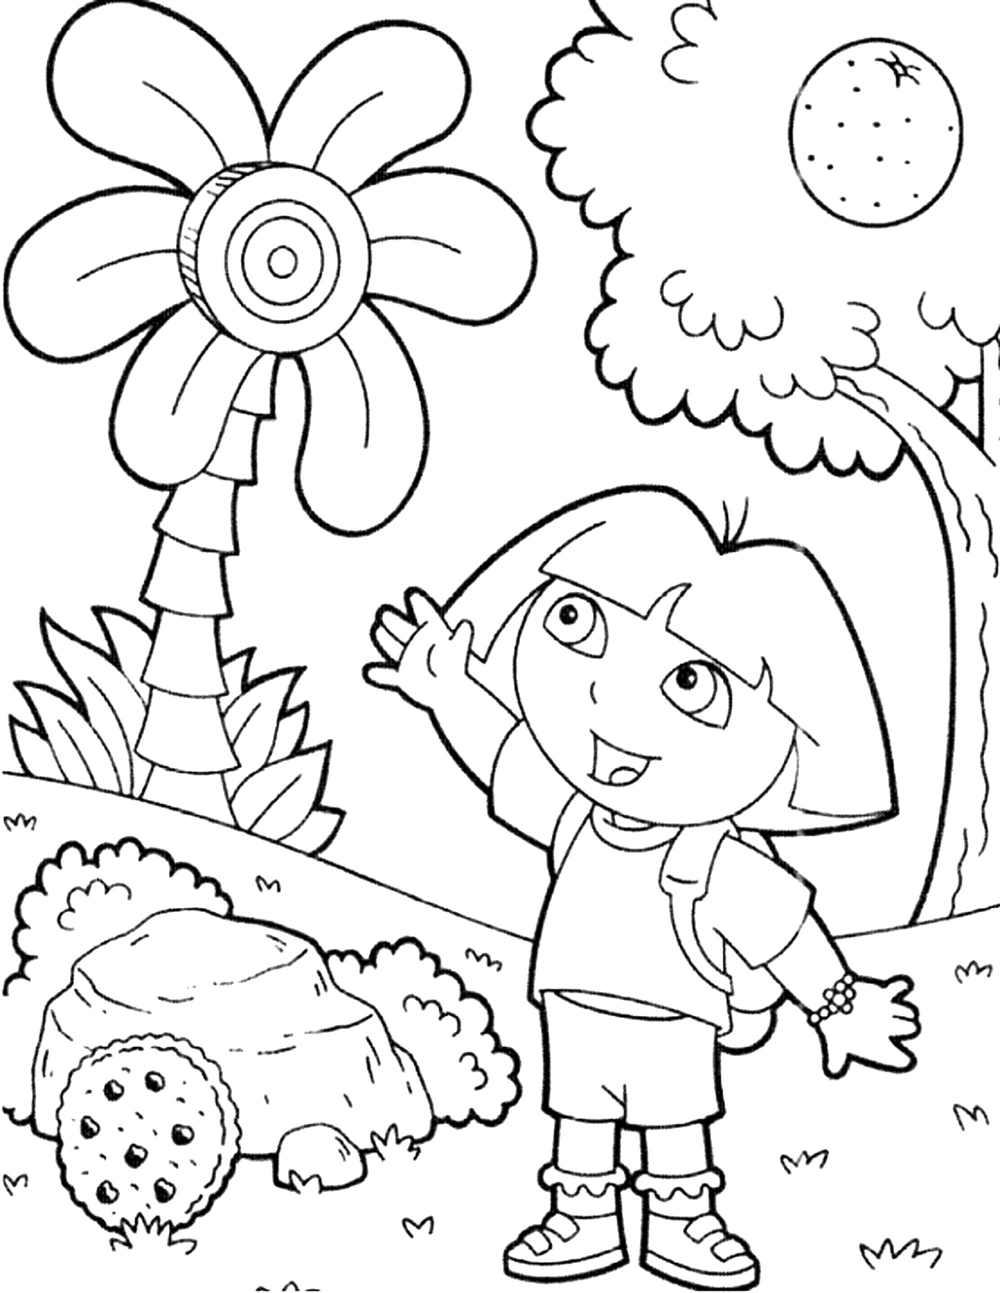 dora colouring pictures print download dora coloring pages to learn new things pictures dora colouring